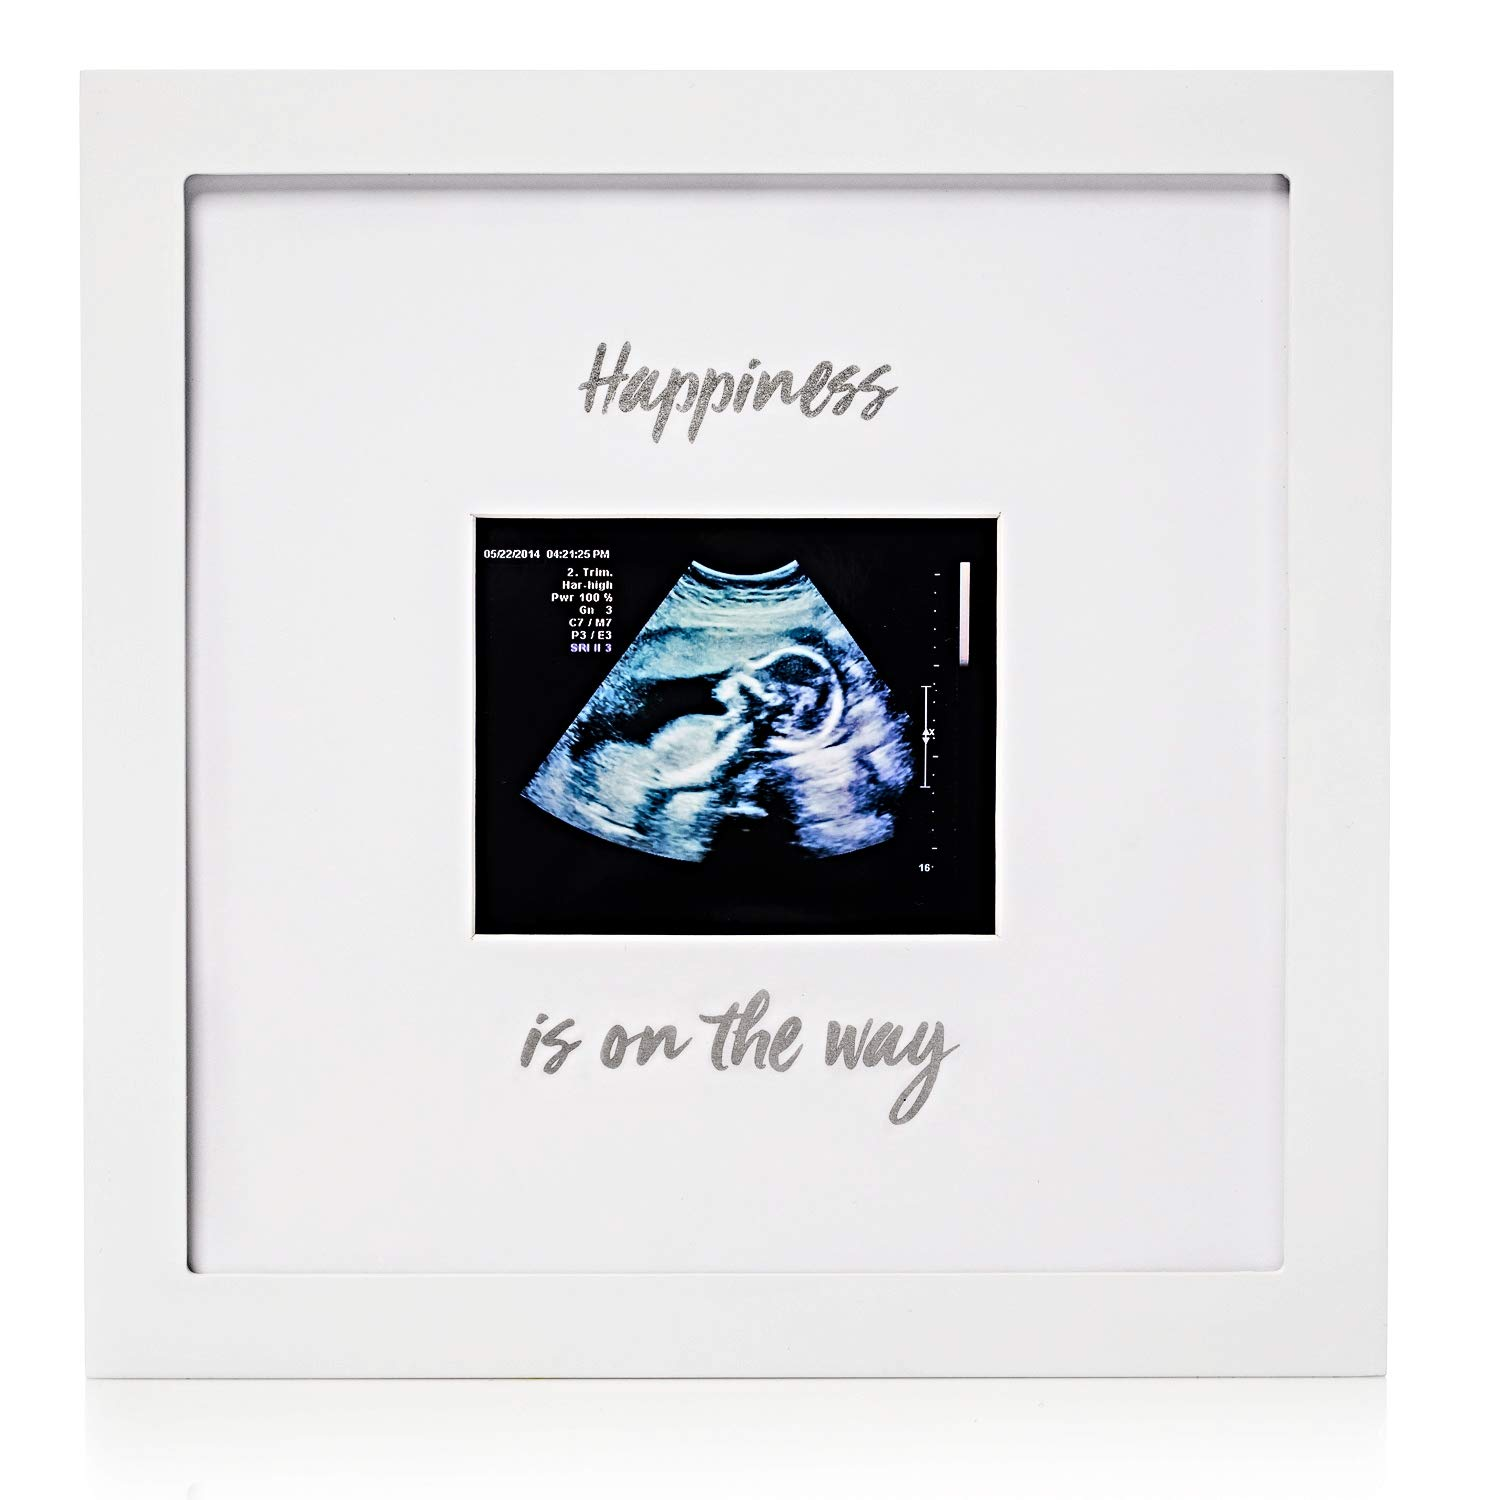 "1Dino Pregnancy Announcement Baby Sonogram Keepsake Picture Frame – Large 10""x 10"" White Natural Wood Photo Frame – Gift Idea for Expecting Parents, Baby Shower Gift, Wall or Desk Nursery Decor"